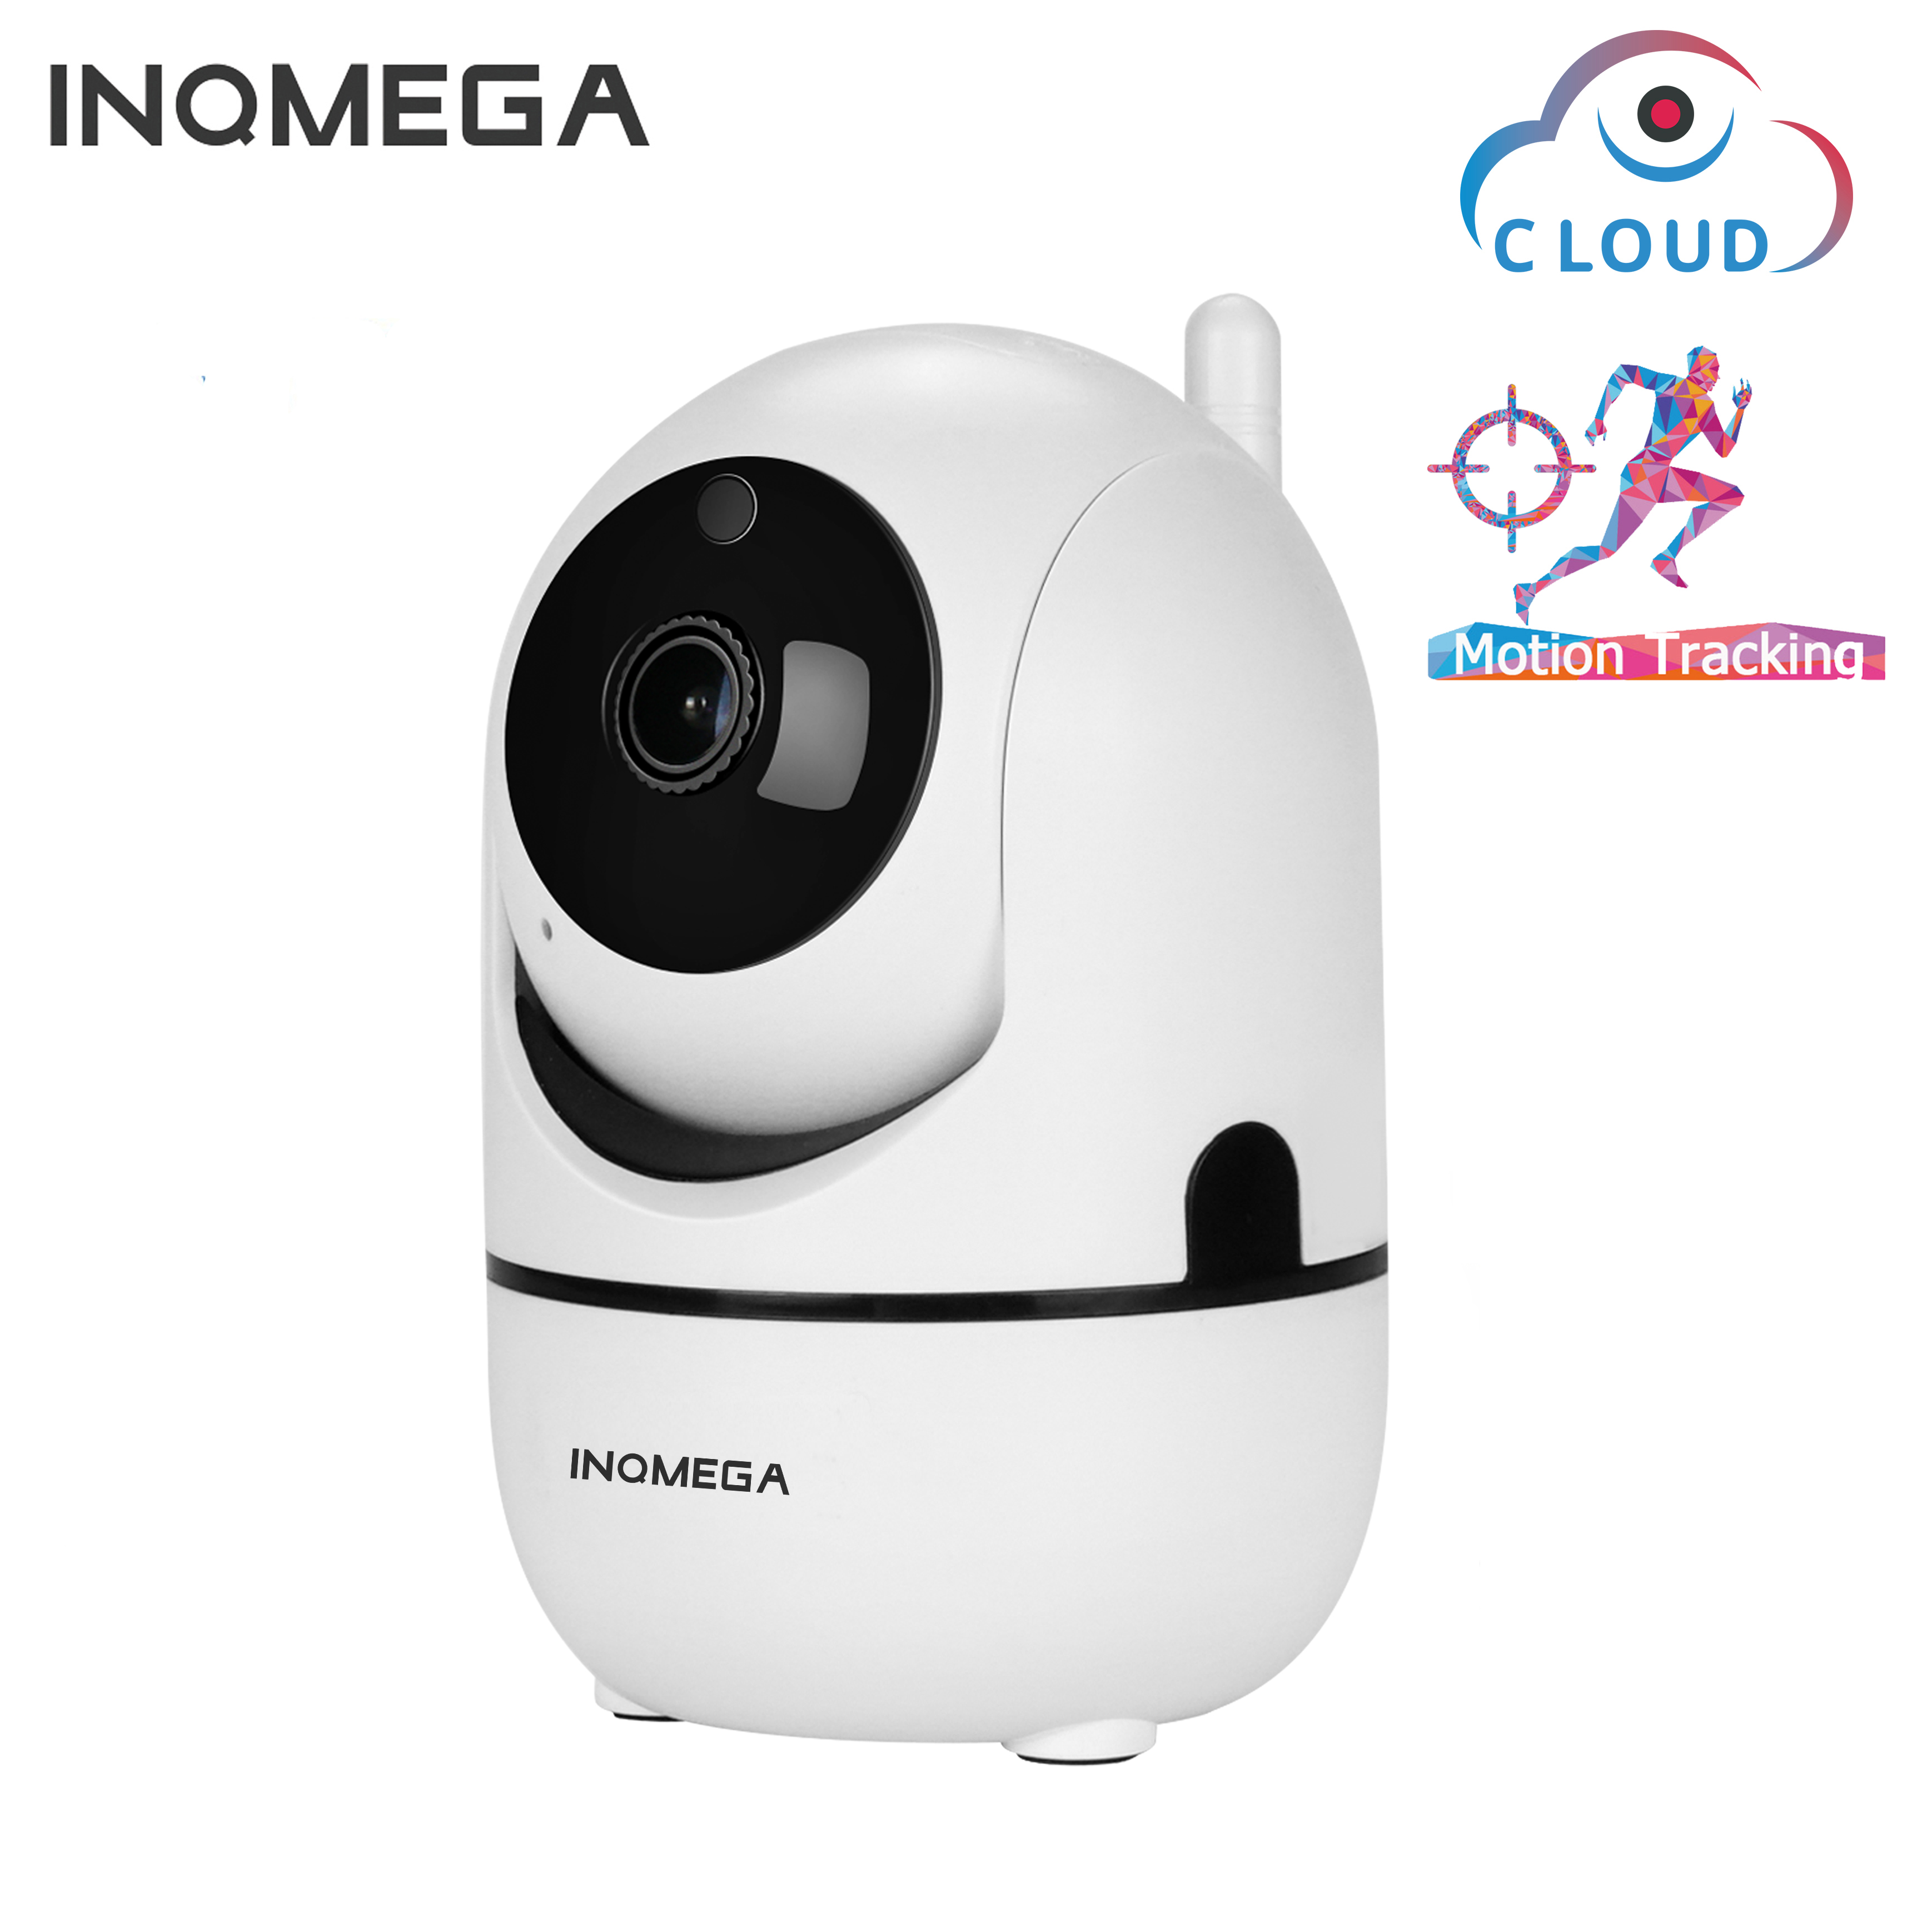 INQMEGA 1080P Cloud Caméra IP sans fil Suivi automatique intelligent - Sécurité et protection - Photo 1